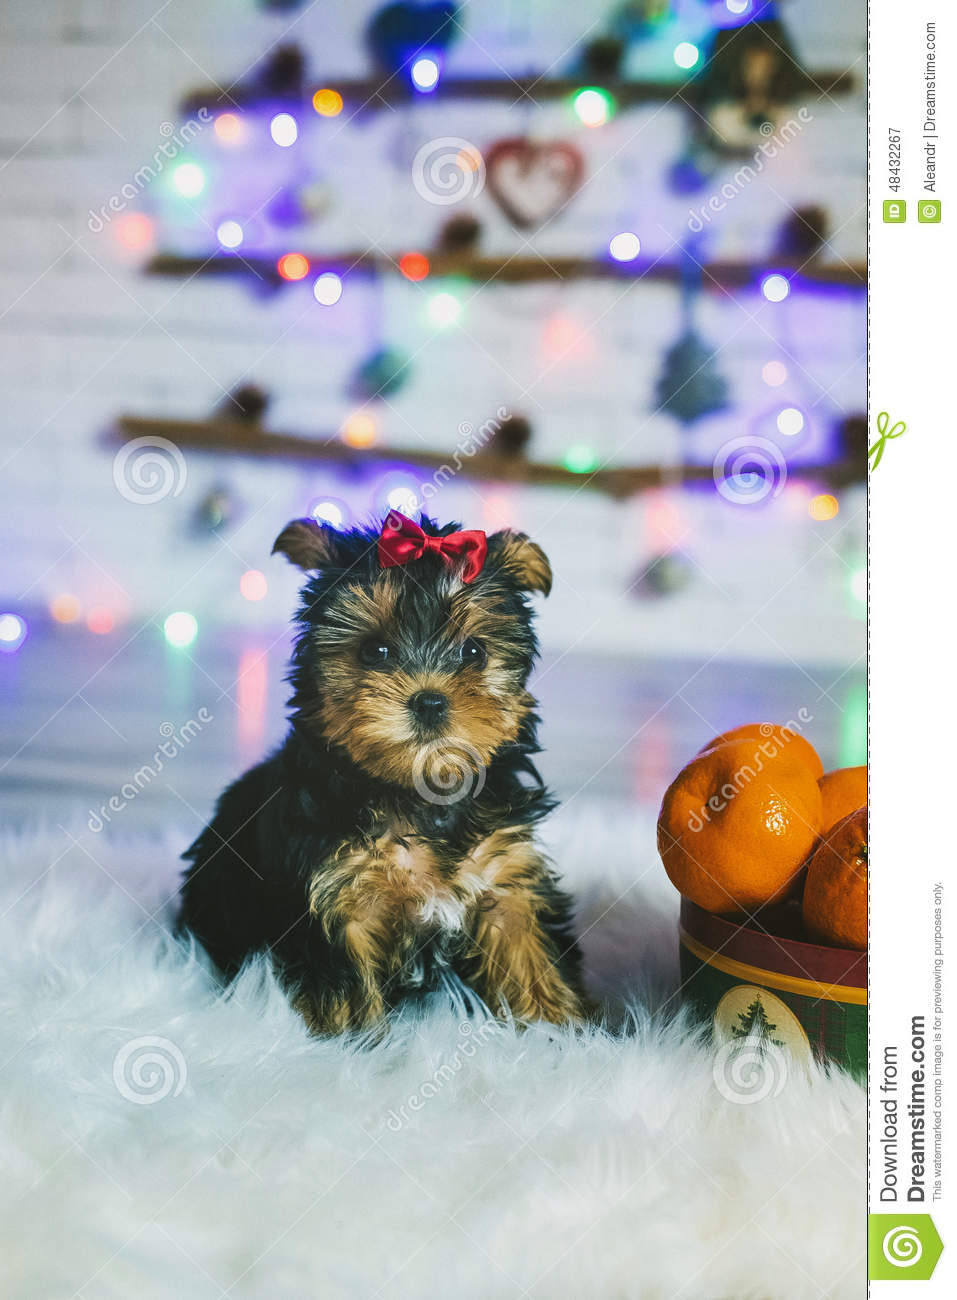 Cute Yorkshire Terrier Puppy Stock Image Image Of Adorable Lapdog